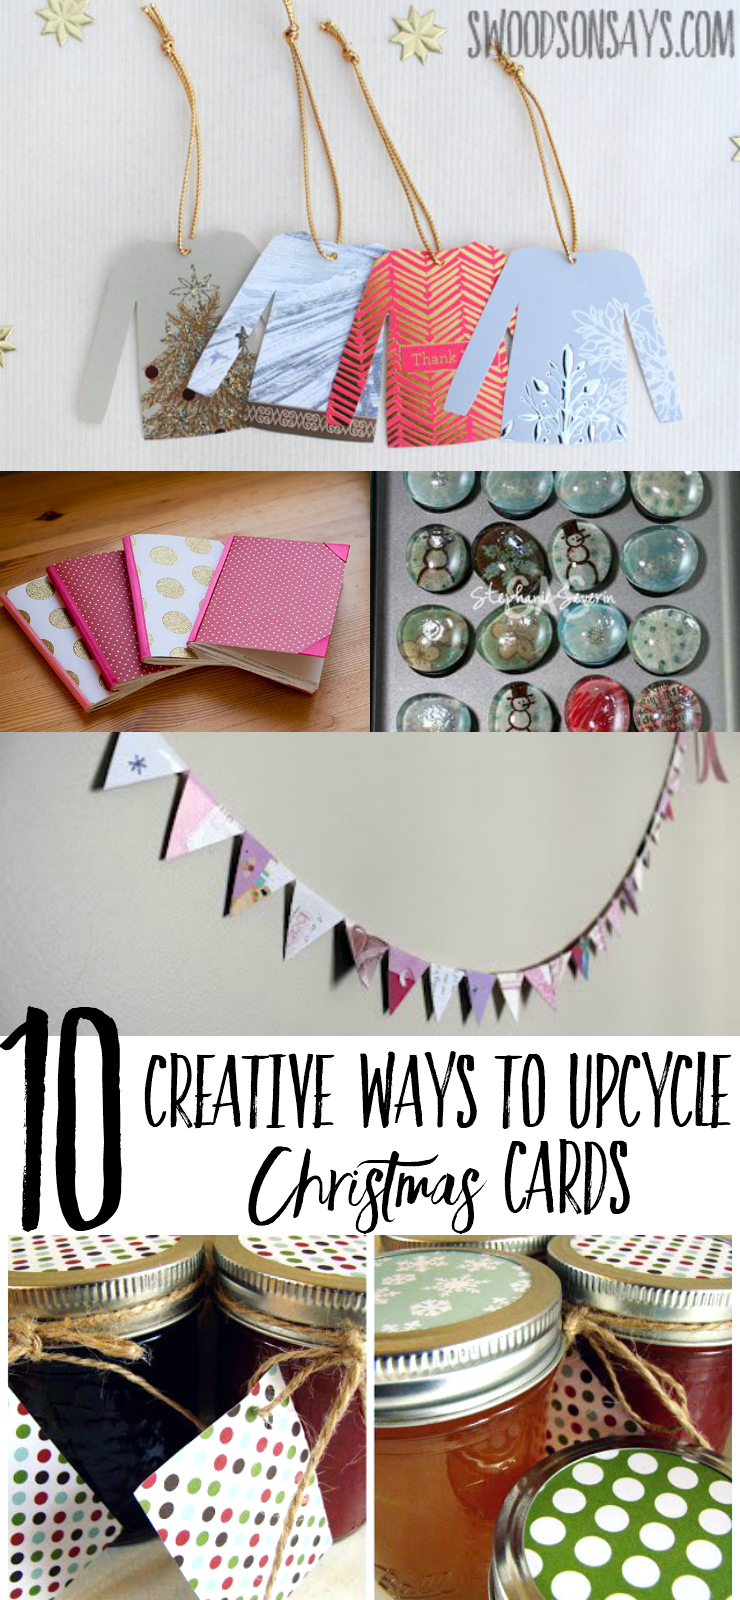 Don't throw away all those beautiful Christmas cards, upcycle them! See 10 creative ways to reuse Christmas cards for crafts. #christmascrafts #christmascards #christmascardupcycle